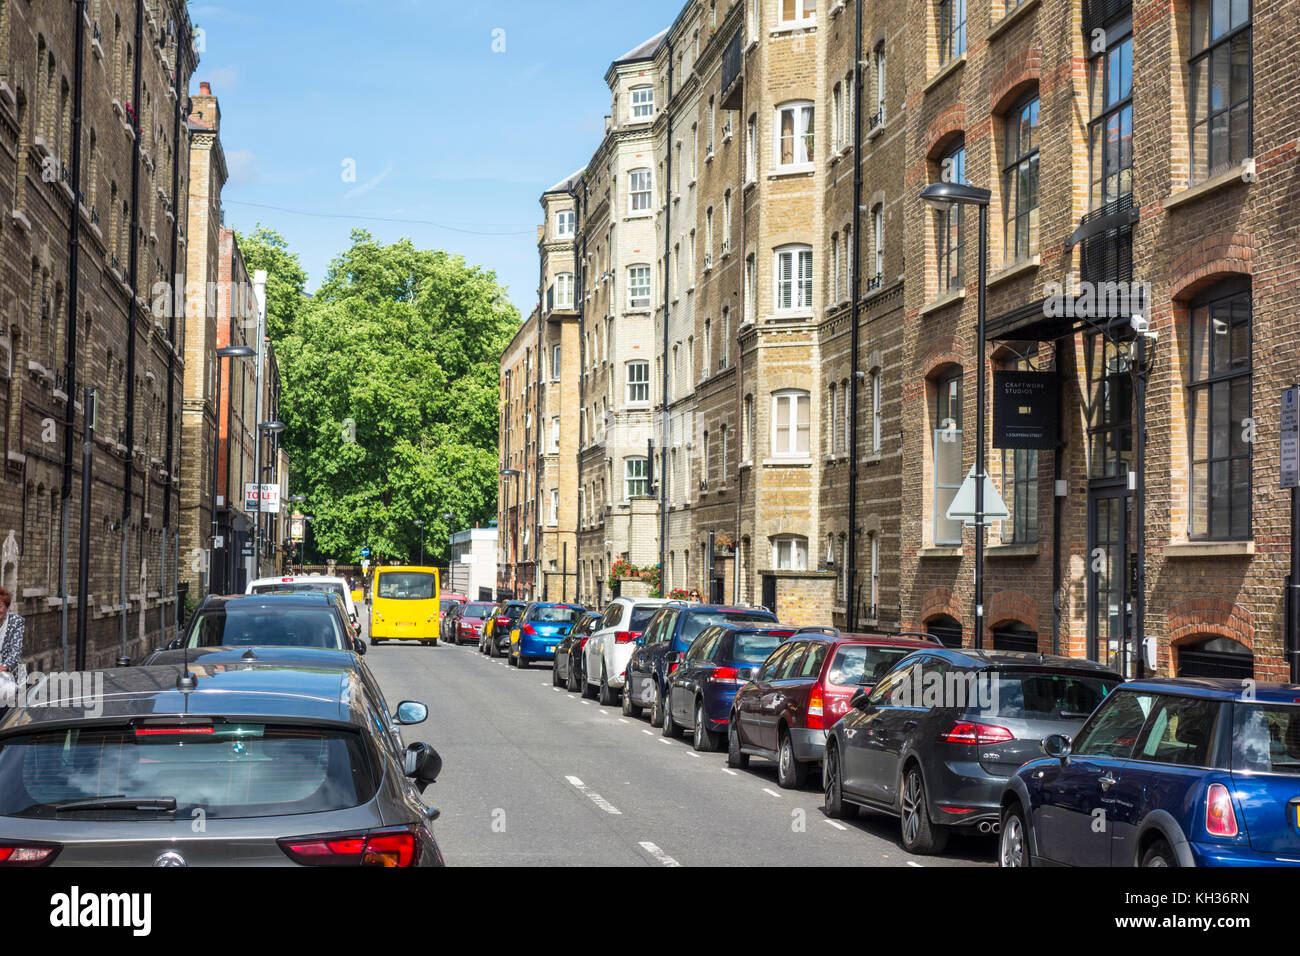 View of cars parked on Dufferin Street, City of London, UK - Stock Image